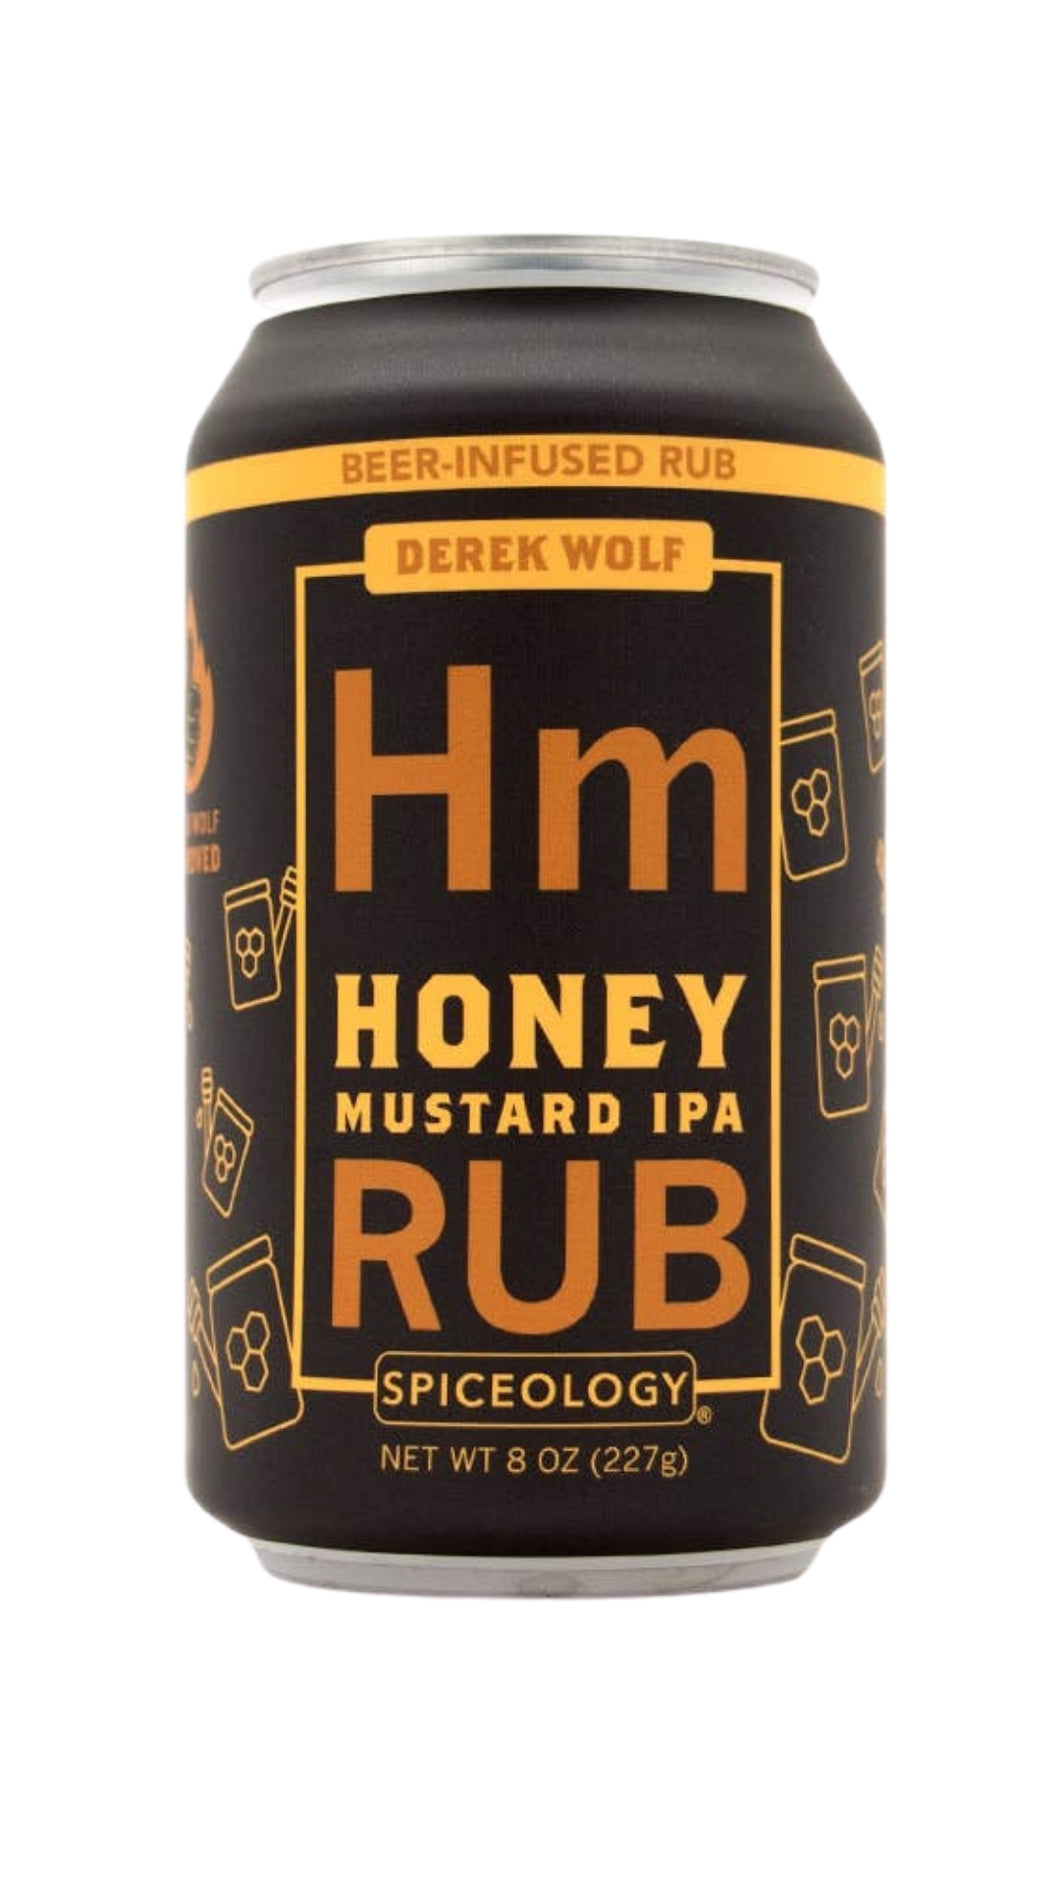 Honey Mustard IPA Rub